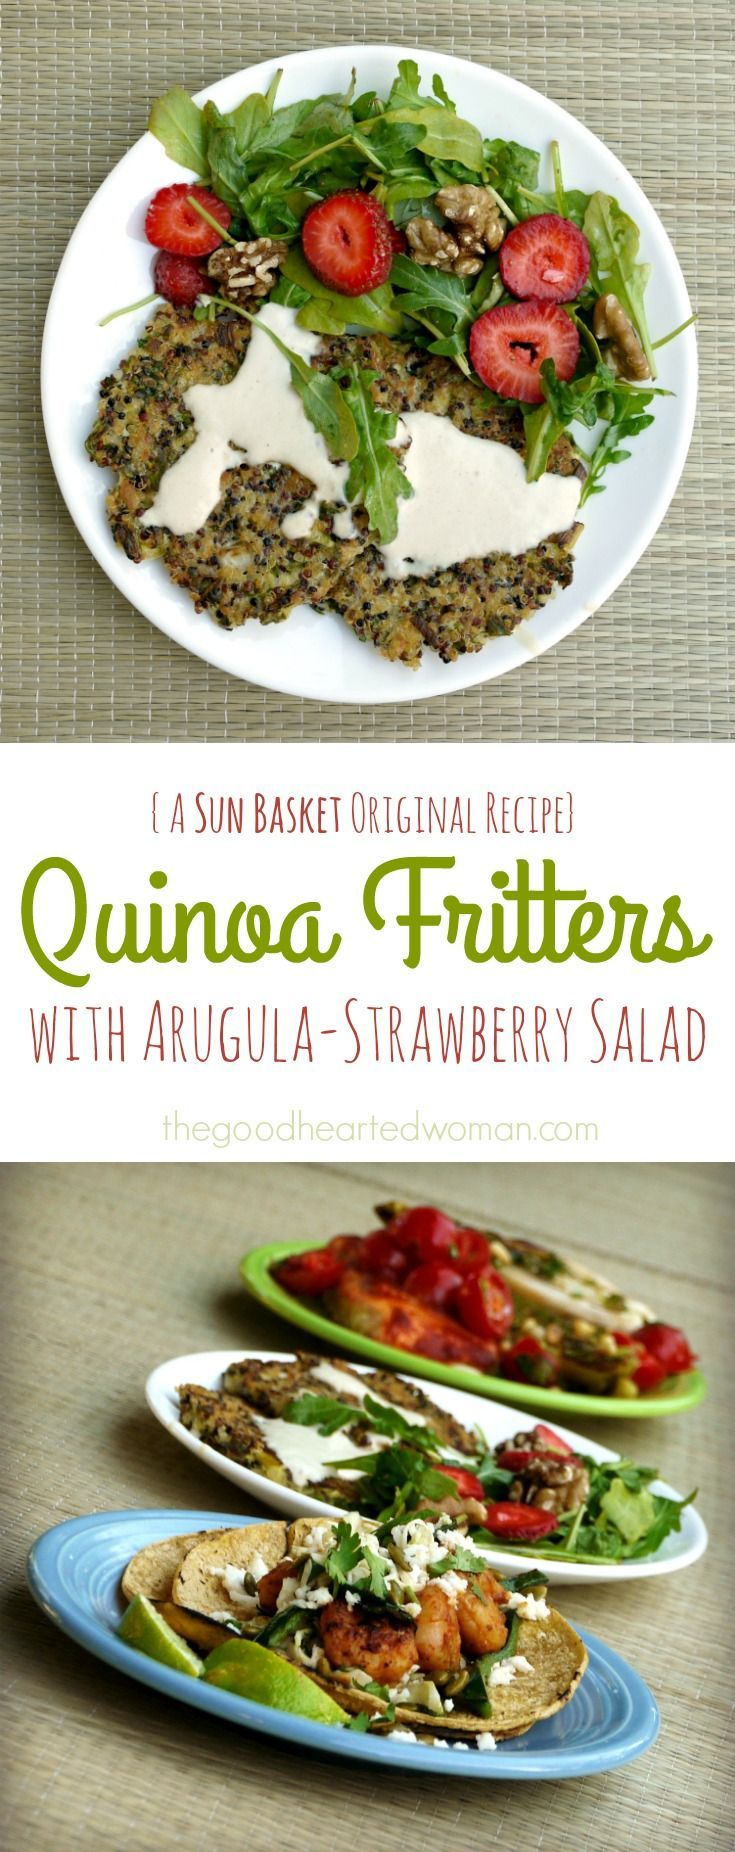 Quinoa Fritters were a huge hit with our family! Clean, Responsible, Healthy & Delicious: A Review of Sun Basket Organic Meal Delivery    The Good Hearted Woman